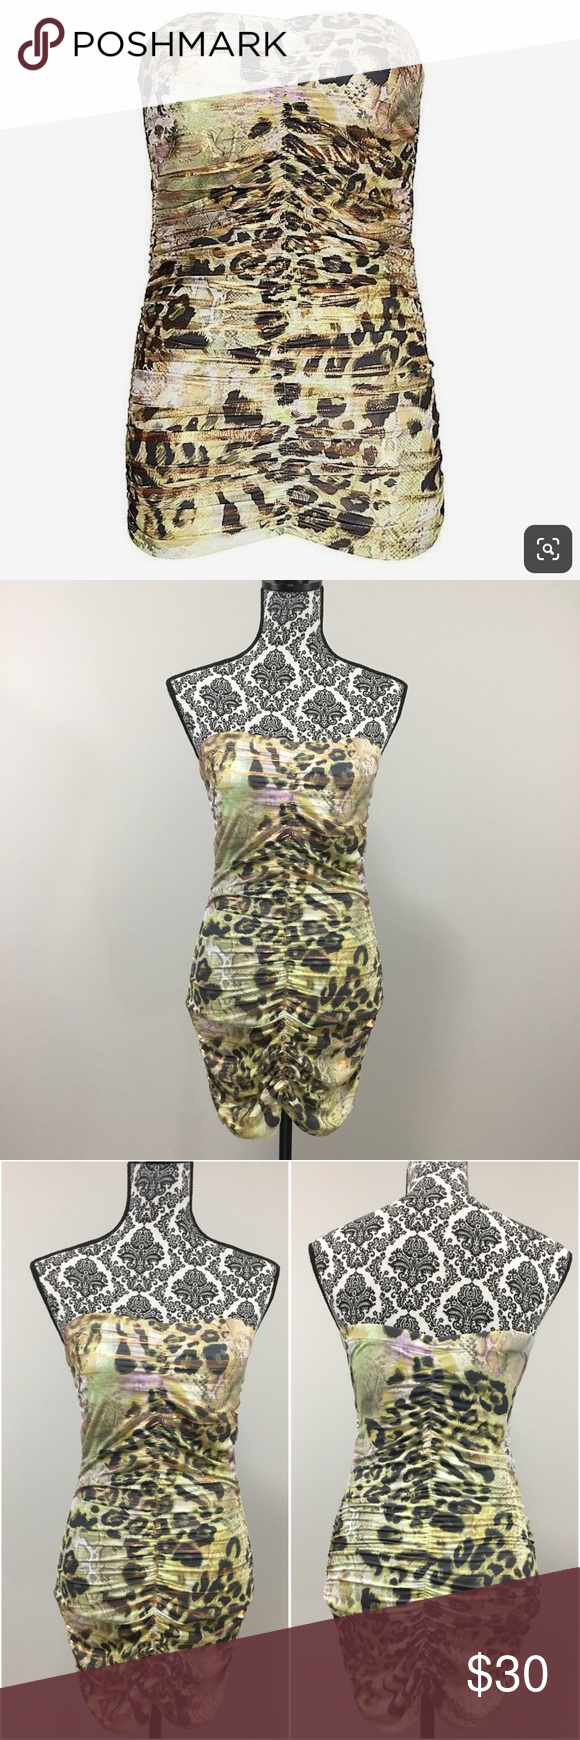 c6f786732121 Daytrip Snakeskin & Cheetah Print Tube Top/Dress M SNAKESKIN PATTERN  STRAPLESS TUBE TOP/ BODYCON MINI DRESS FROM BUCKLE! Wear it as a tube top  or a sexy ...